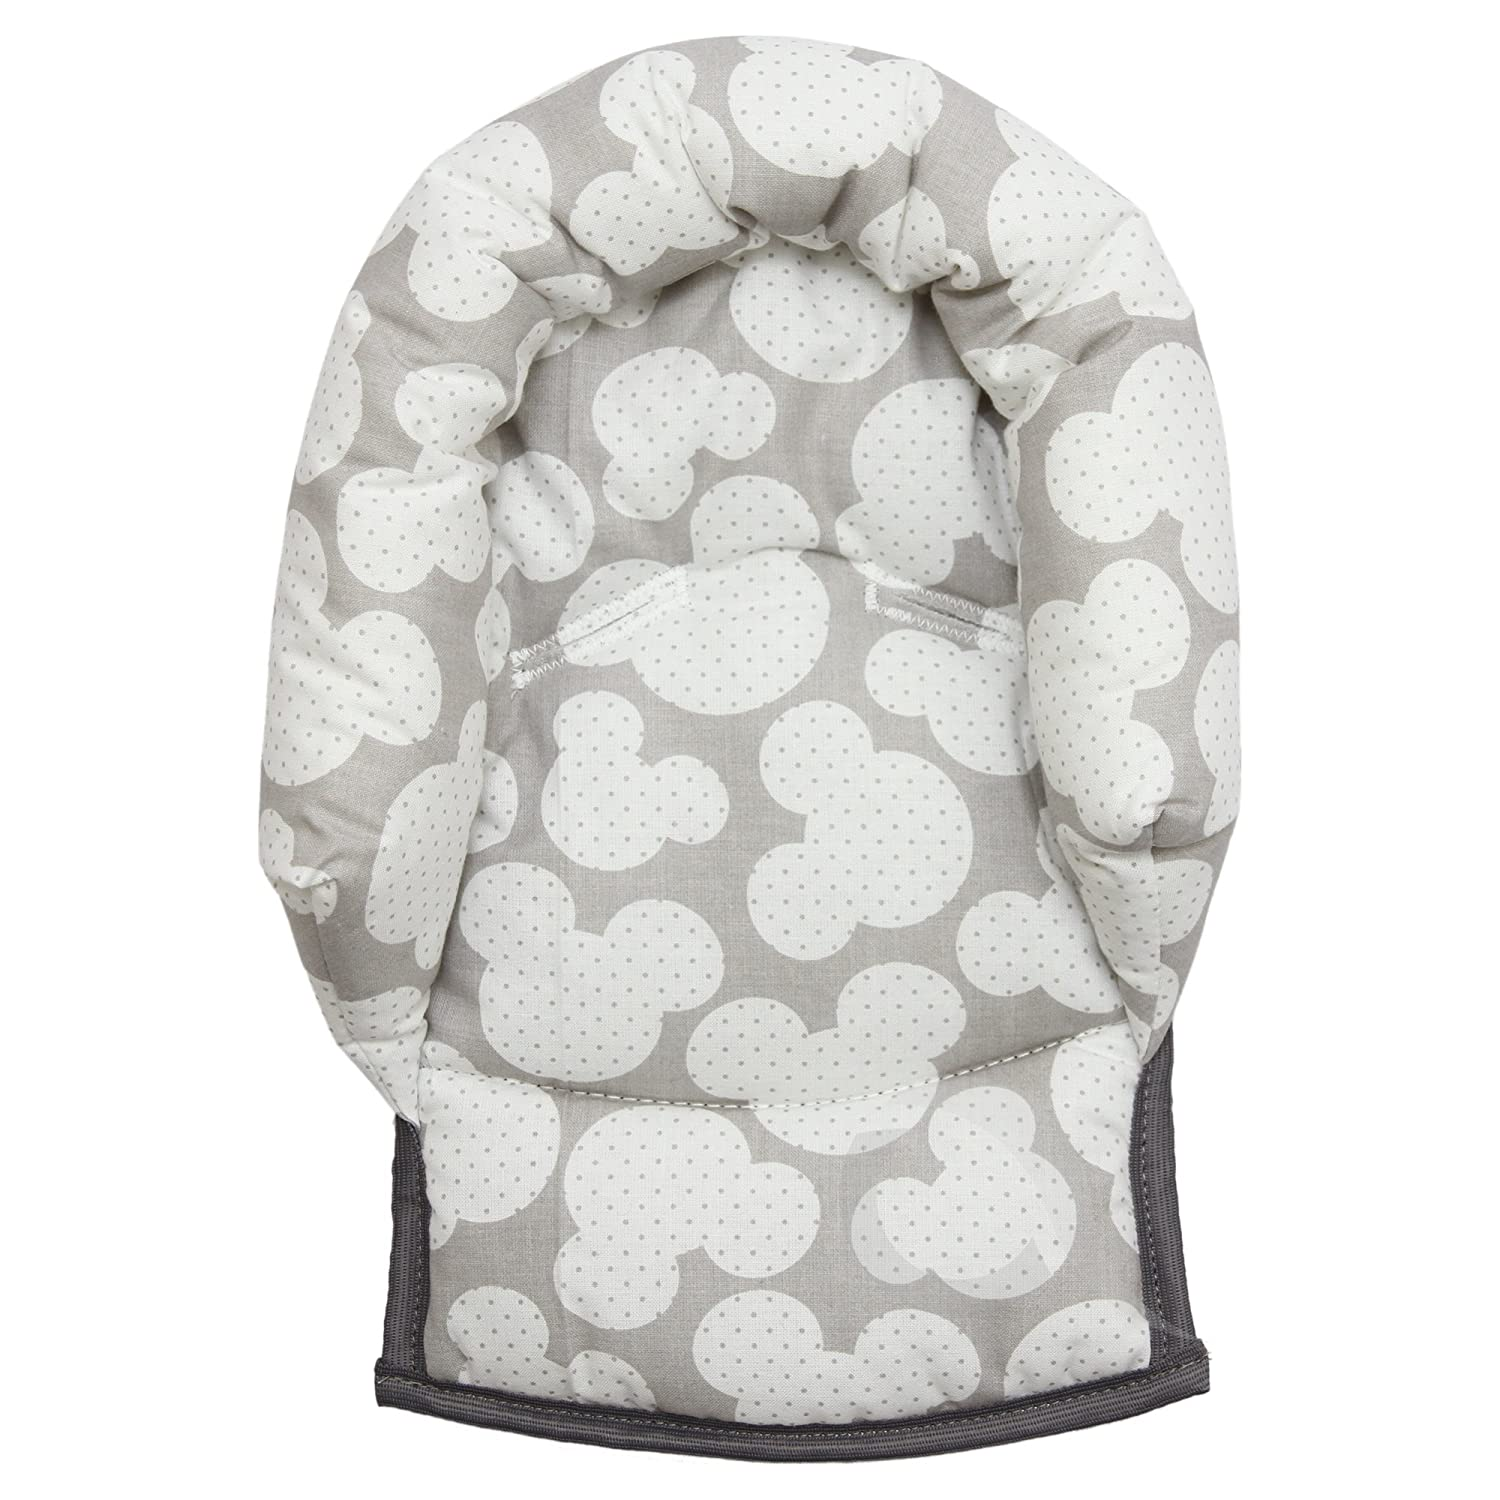 BABY BUTTERFLY SUPPORT PILLOW ANTISHAKE HEAD SUPPORT FOR CAR SEAT STROLLER Grey - small grey stars on white